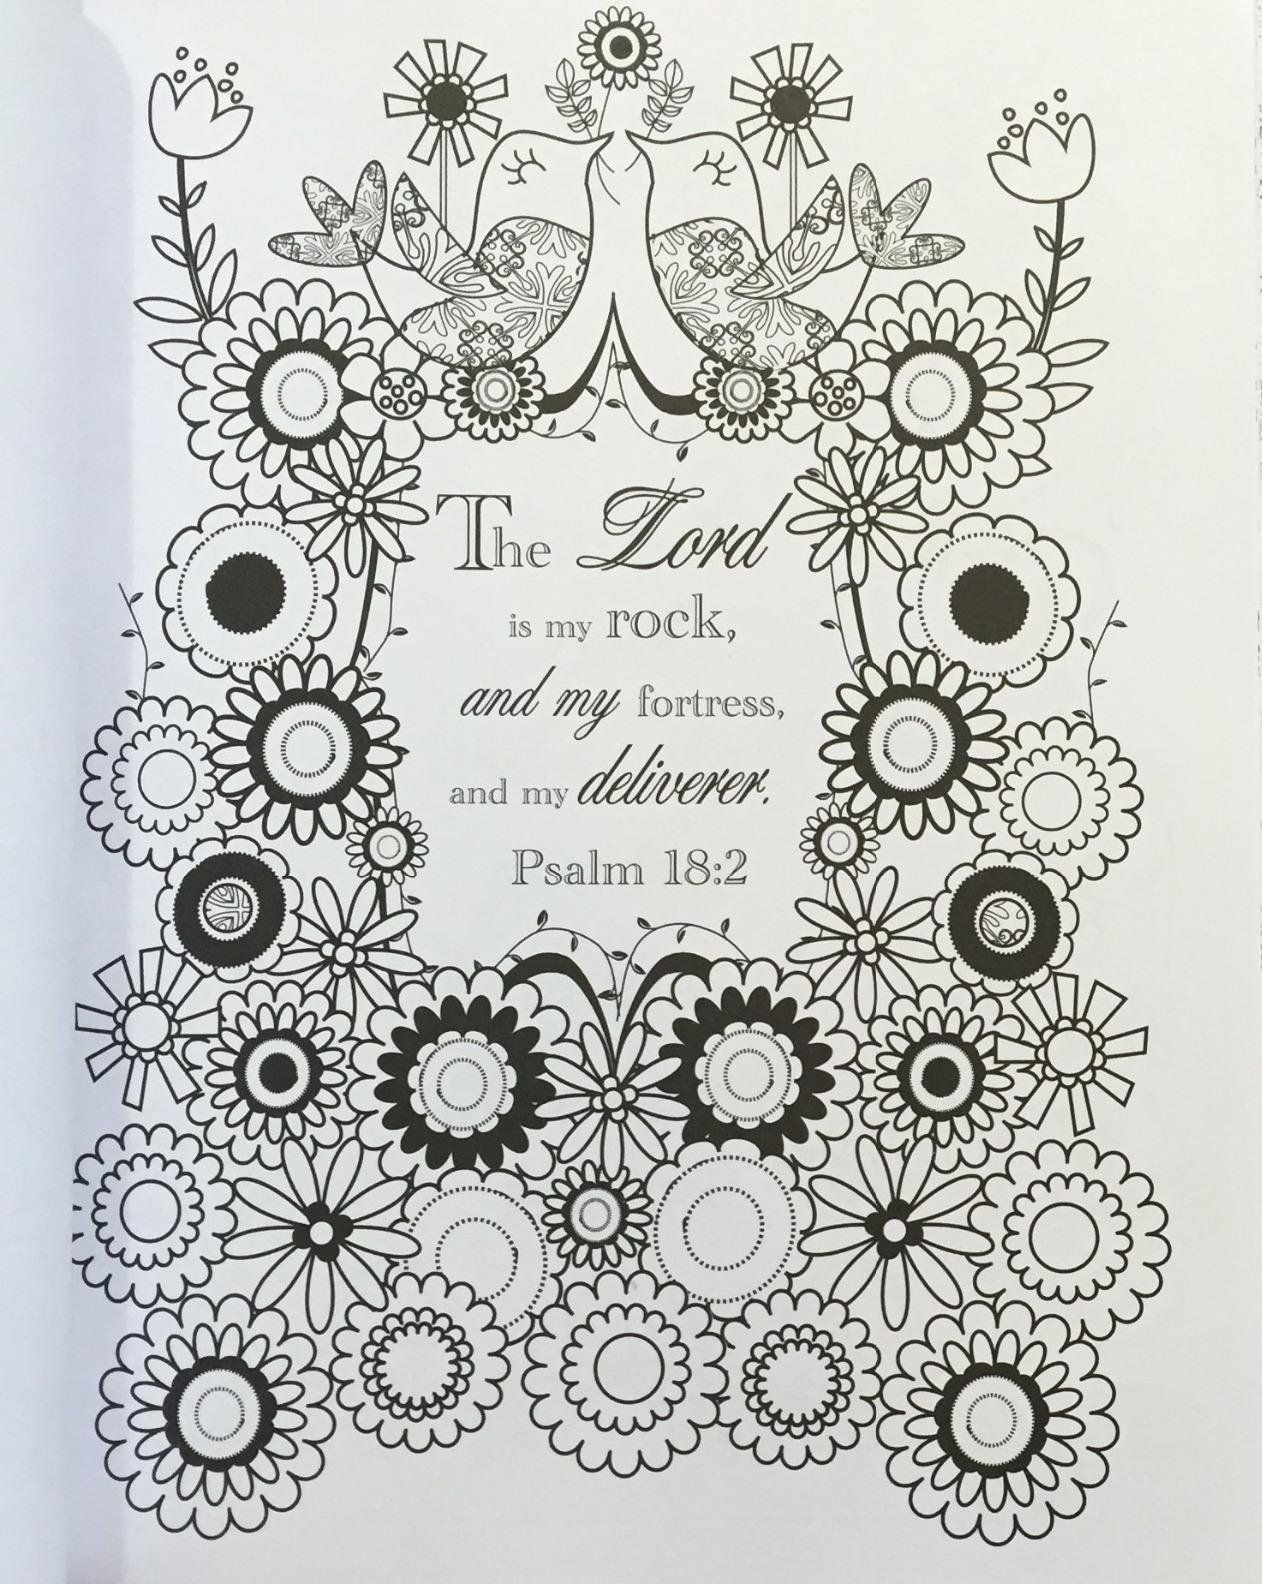 Amazon Com The Bible Promise Book Creative Inspiration For The Soul Color Yourself Inspired 9 Bible Coloring Pages Free Coloring Pages Christian Coloring